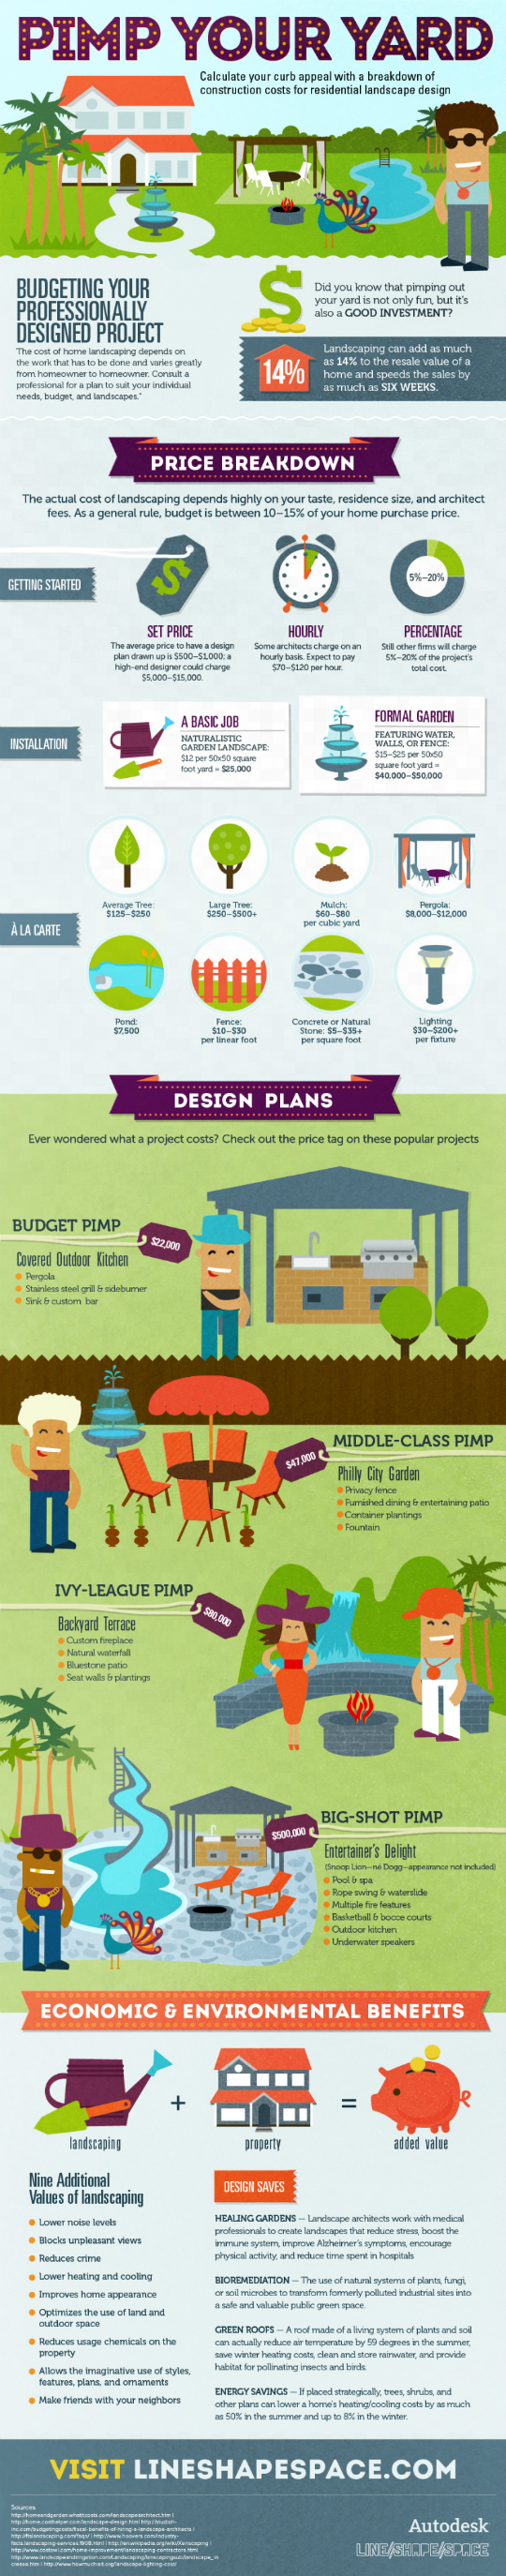 Landscaping-costs-infographic-autodesk-lemonly-infographic-design